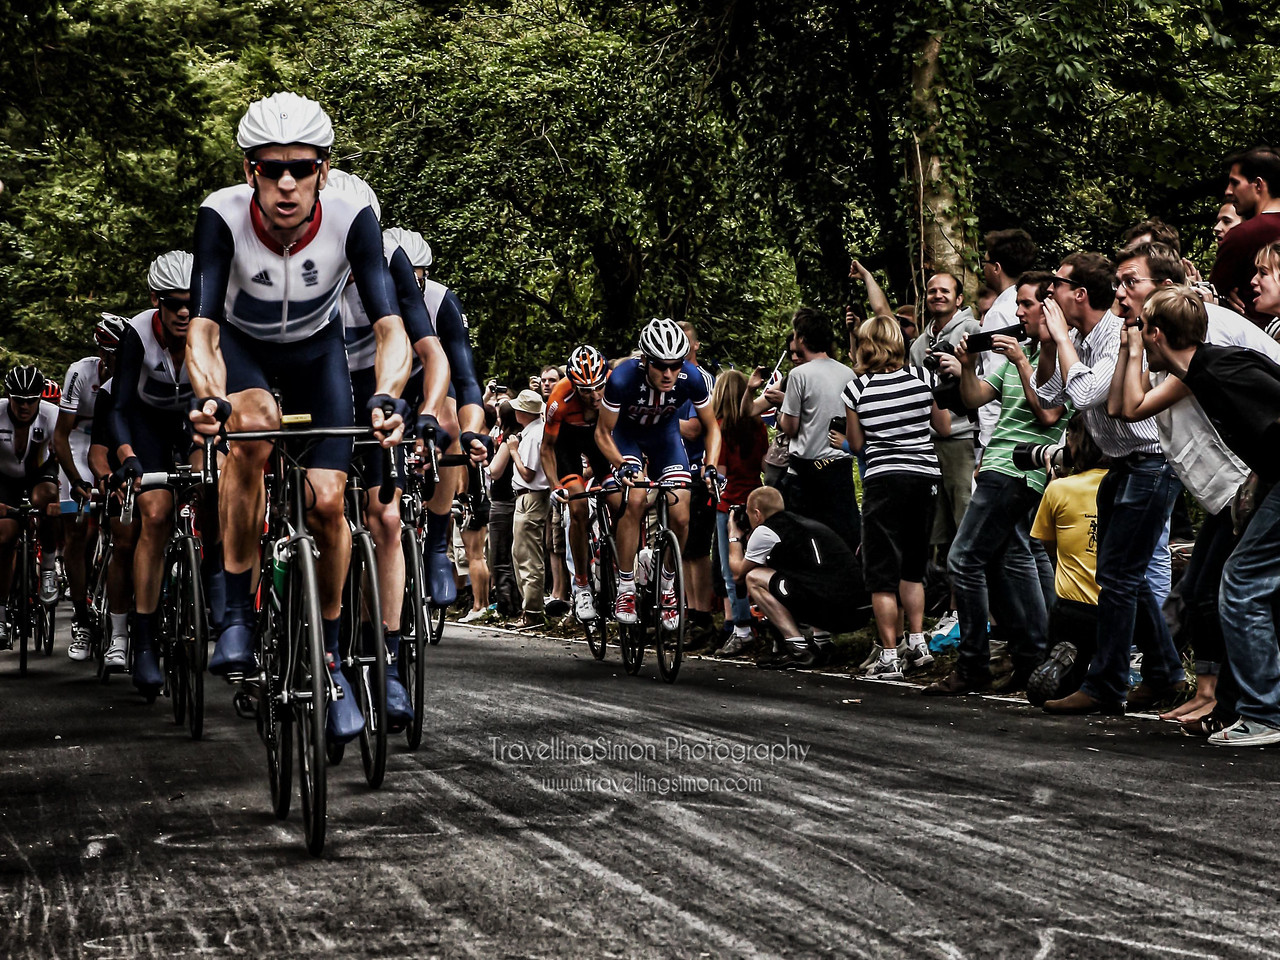 Britains first ever Tour de France winner Bradley Wiggins drives the peloton hard in the Men's Road Race of the London 2012 Olympics, in a vain attempt to catch the breakaway, here seen at Box Hill, Surrey. Congratulations on winning an awesome Olympic Gold in the Time Trial, Wiggo!